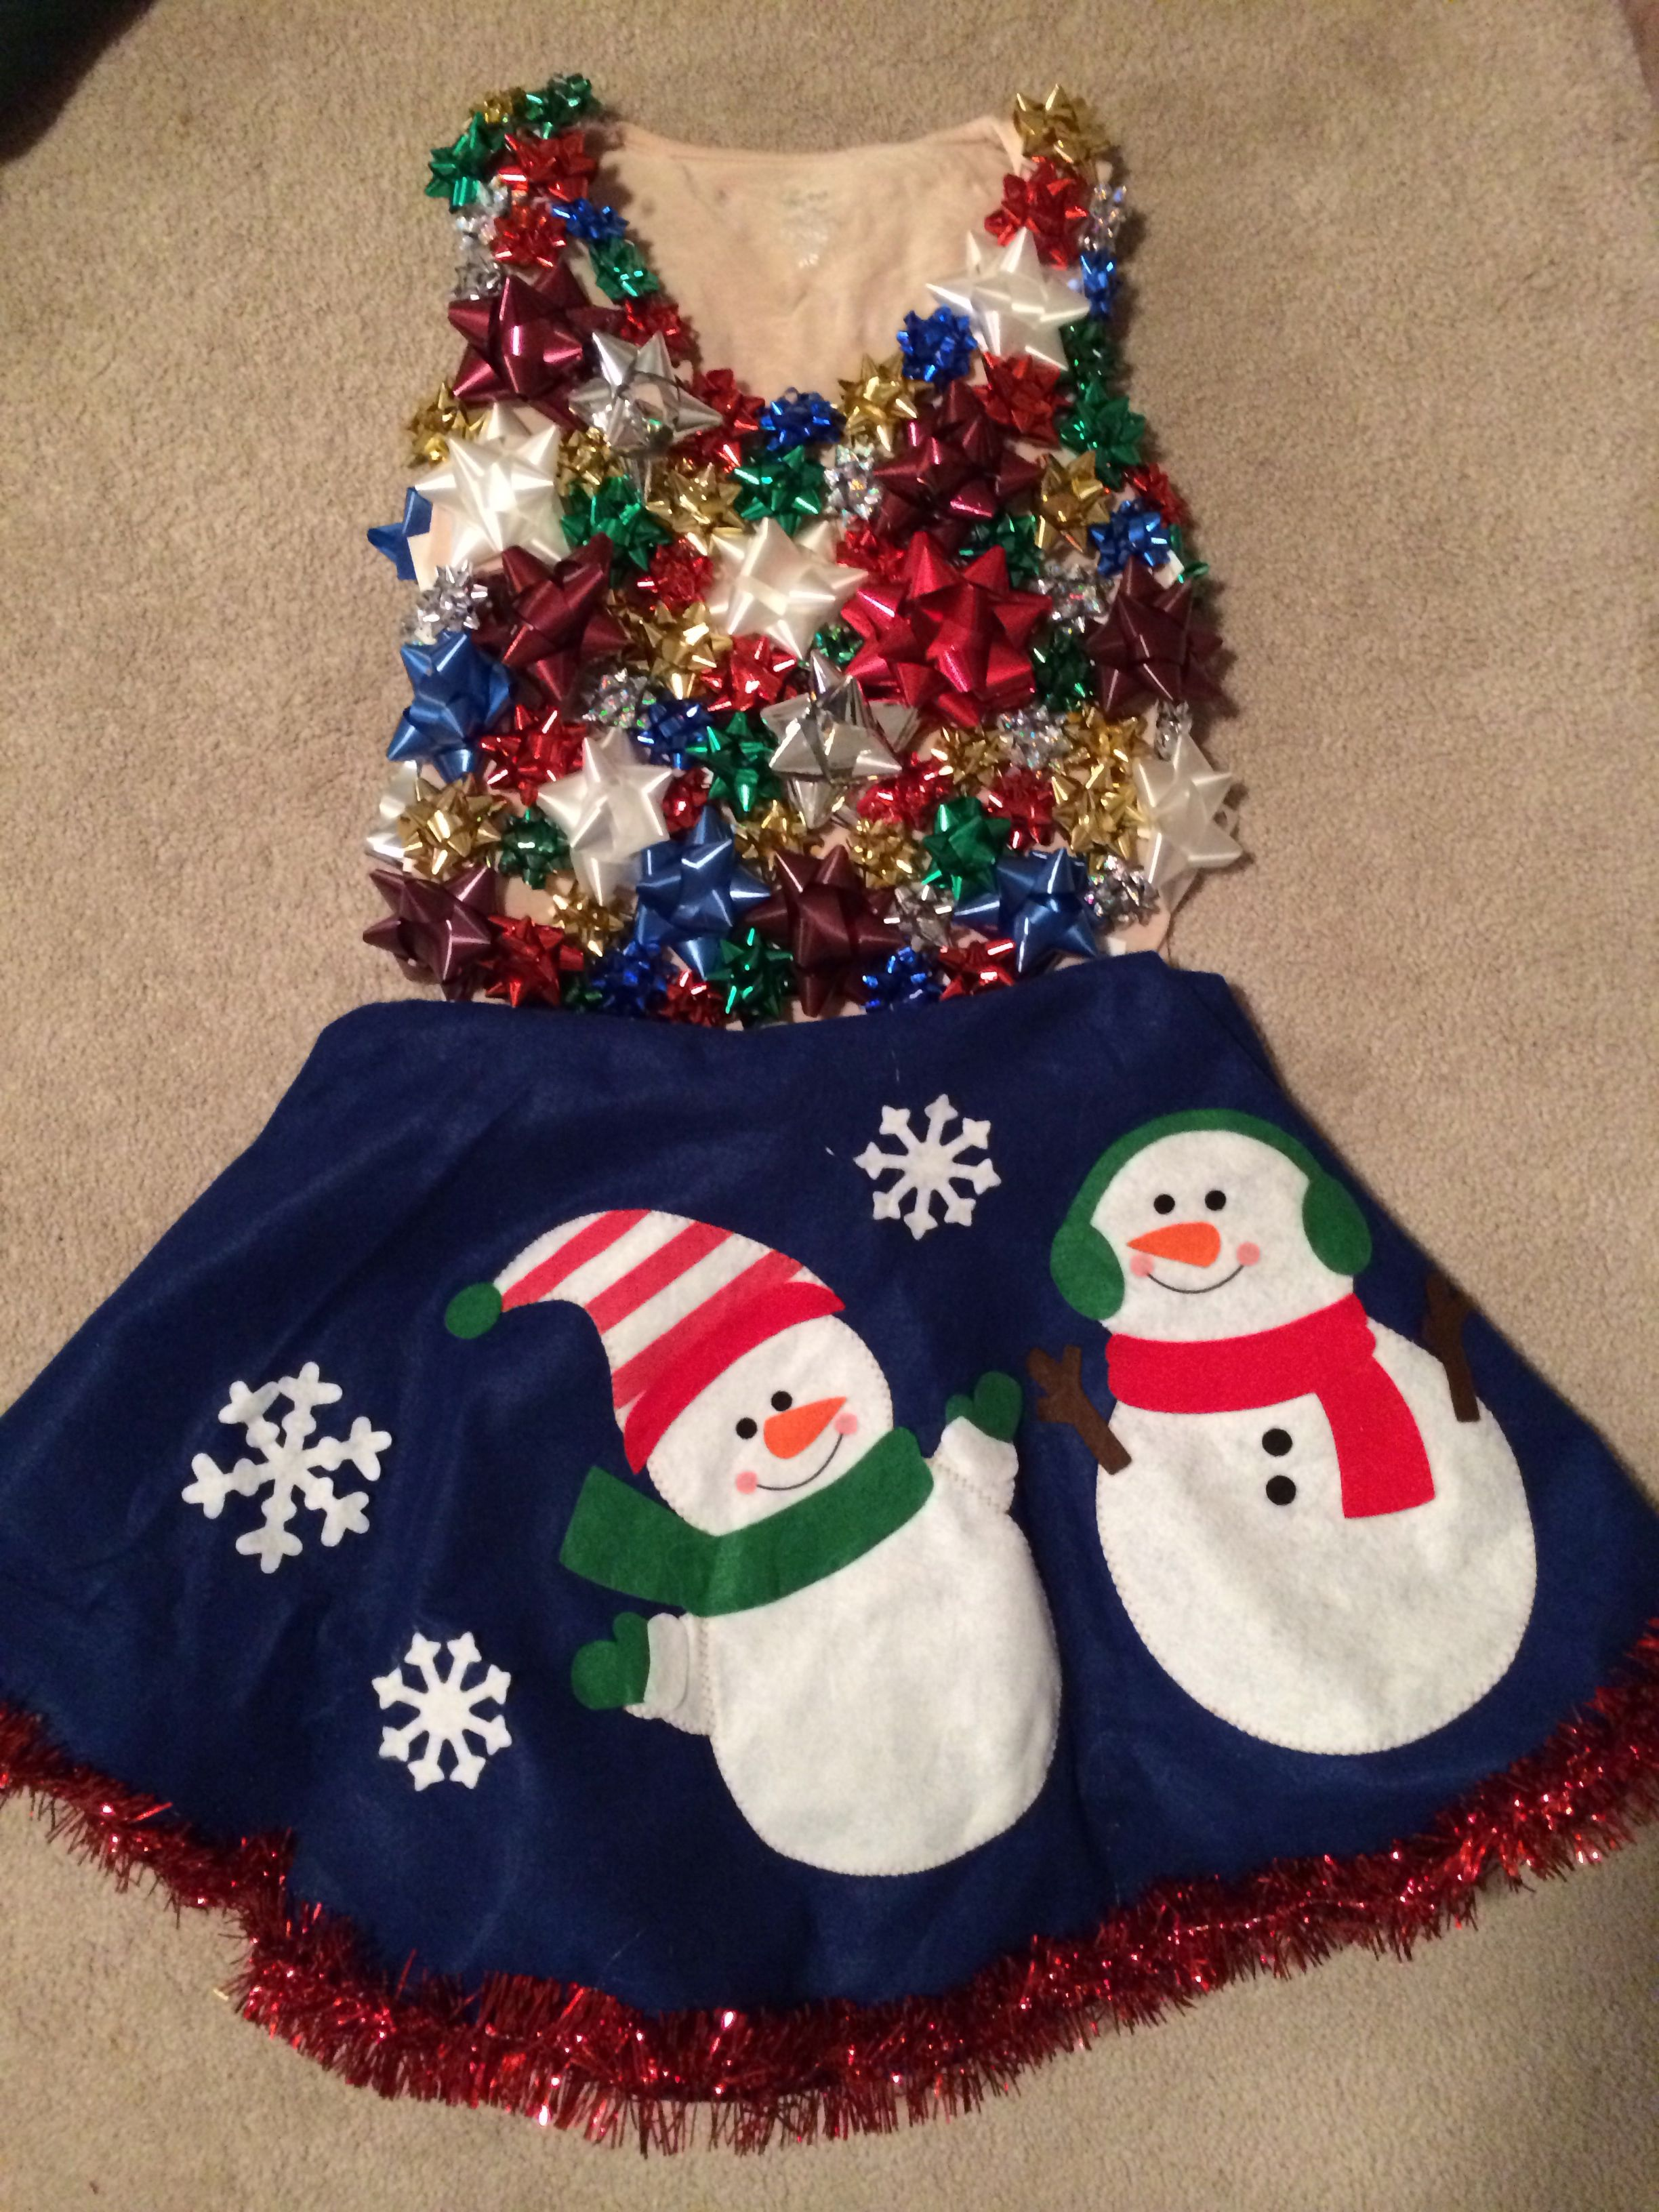 Tacky Christmas Party Outfit Ideas Part - 45: Diy Ugly Christmas Party Outfit With A Cheap Tree Skirt U0026 Bows Hot Glued To  A Tank Top.